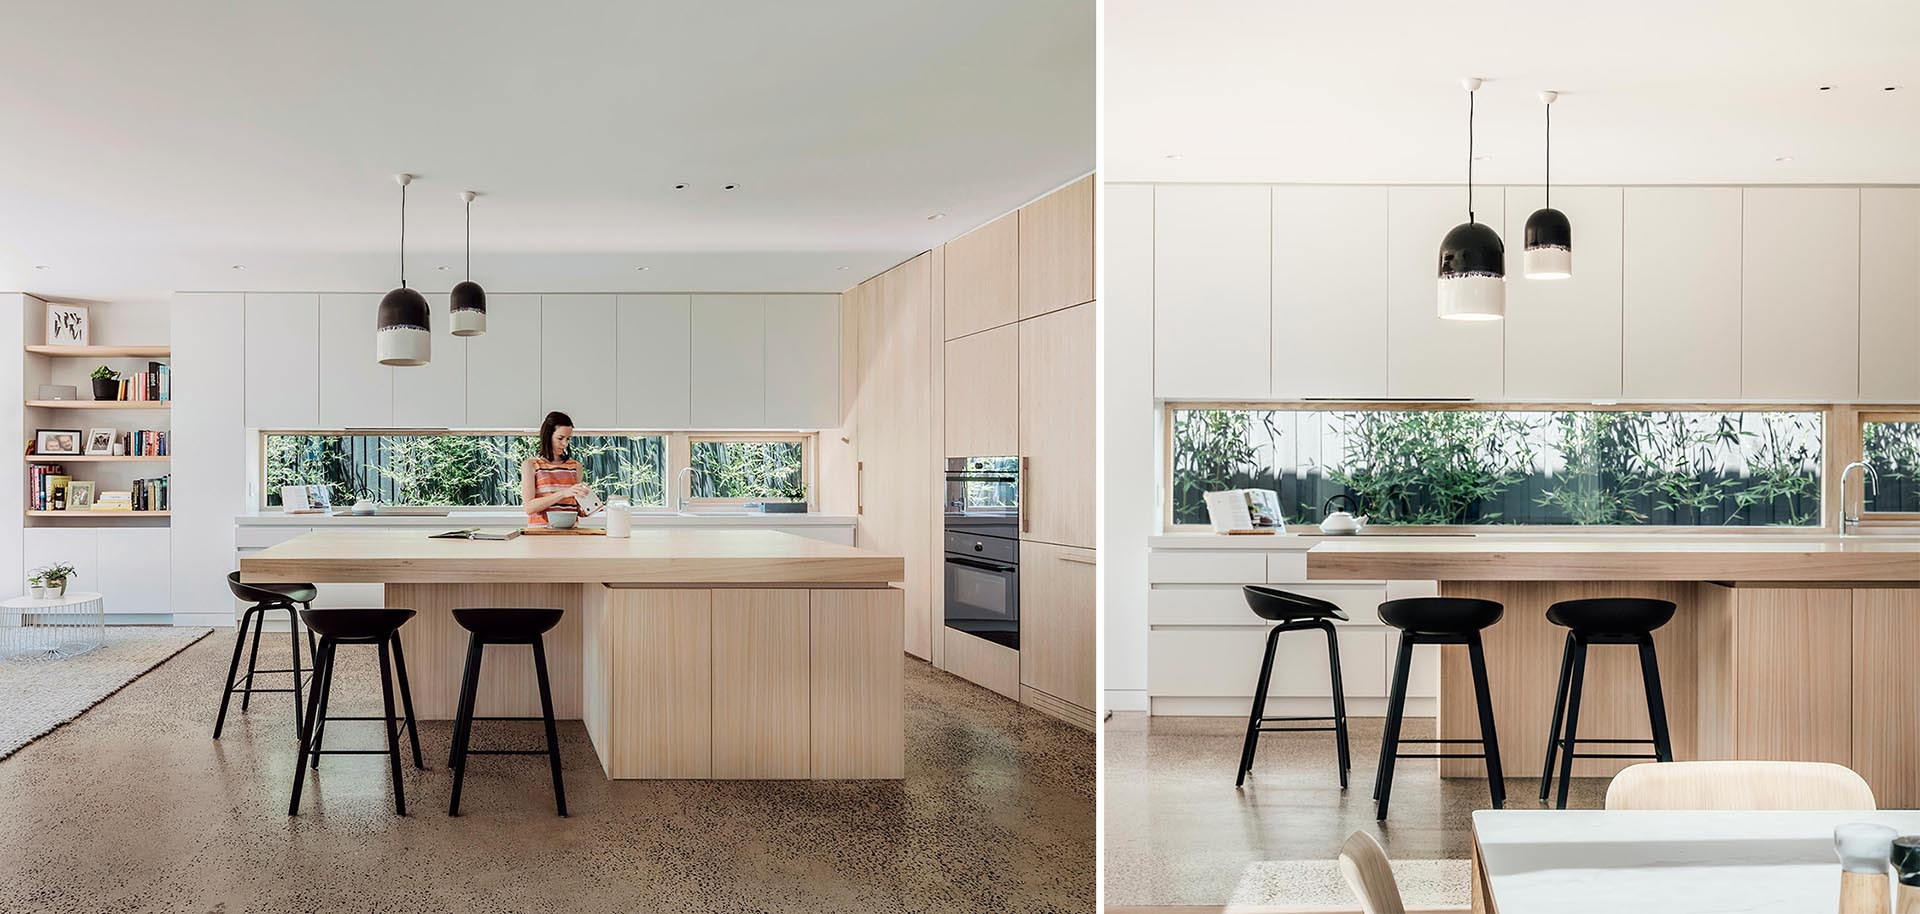 A modern open plan kitchen with minimalist white and wood cabinets, and a window that acts as a backsplash.